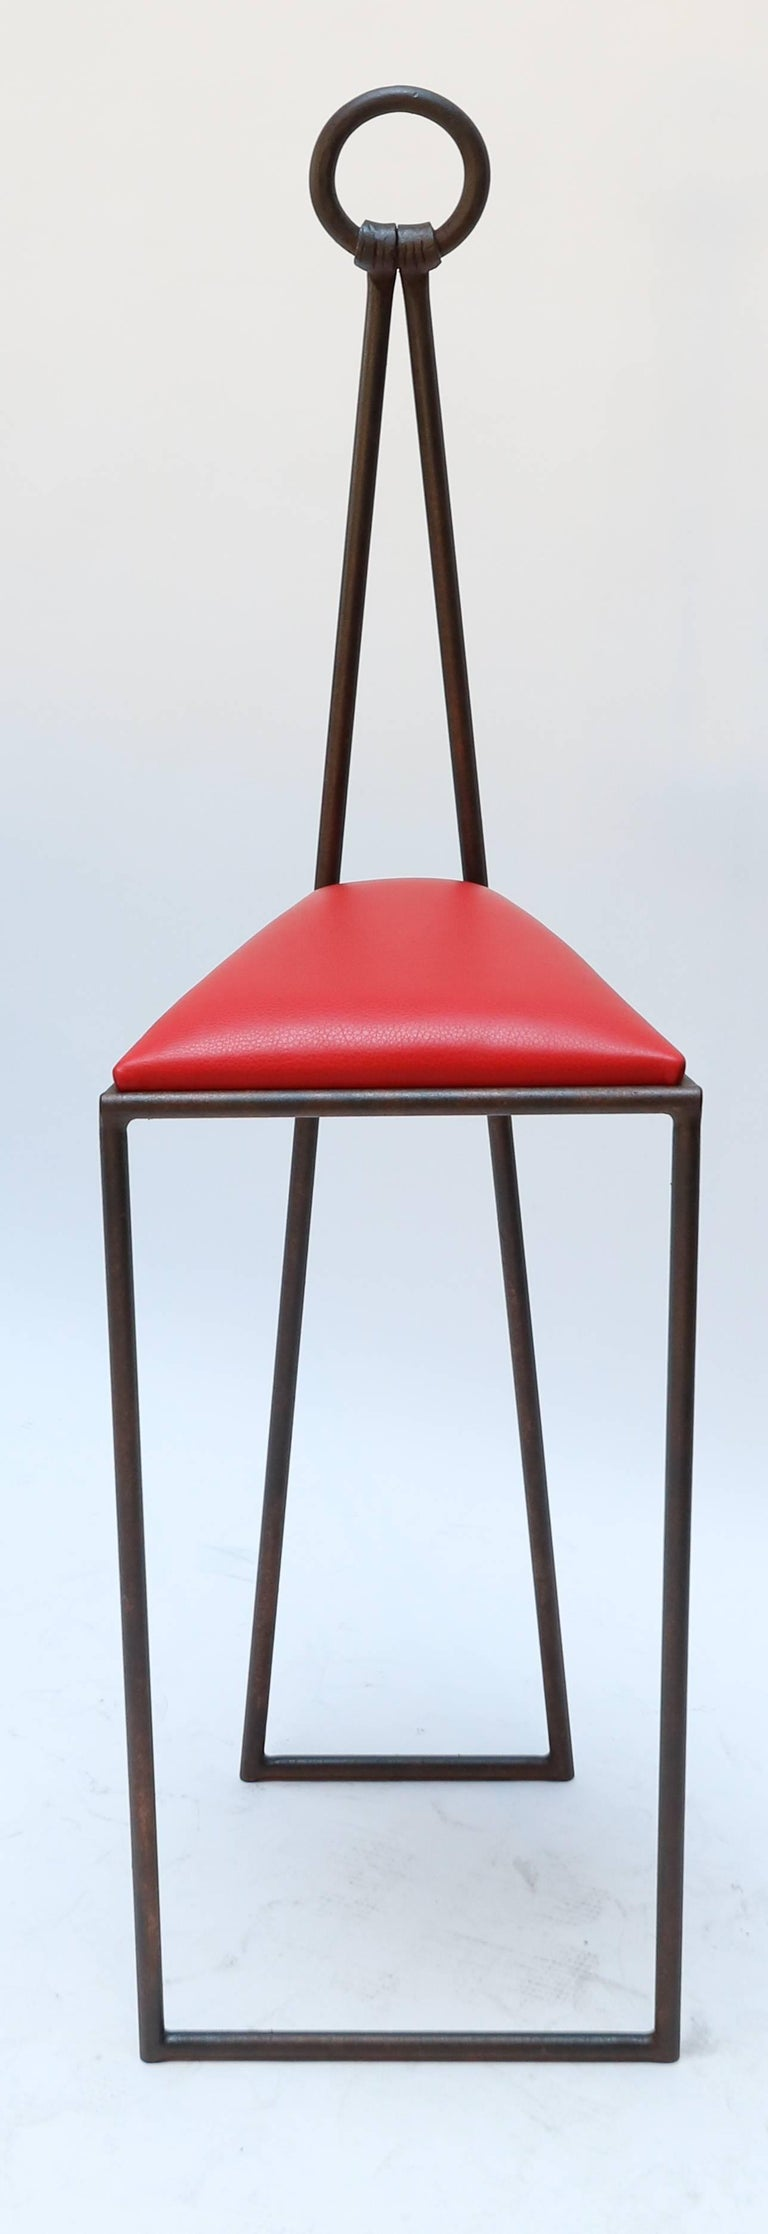 Mid century modern custom iron bar stools with red leather seats for sale